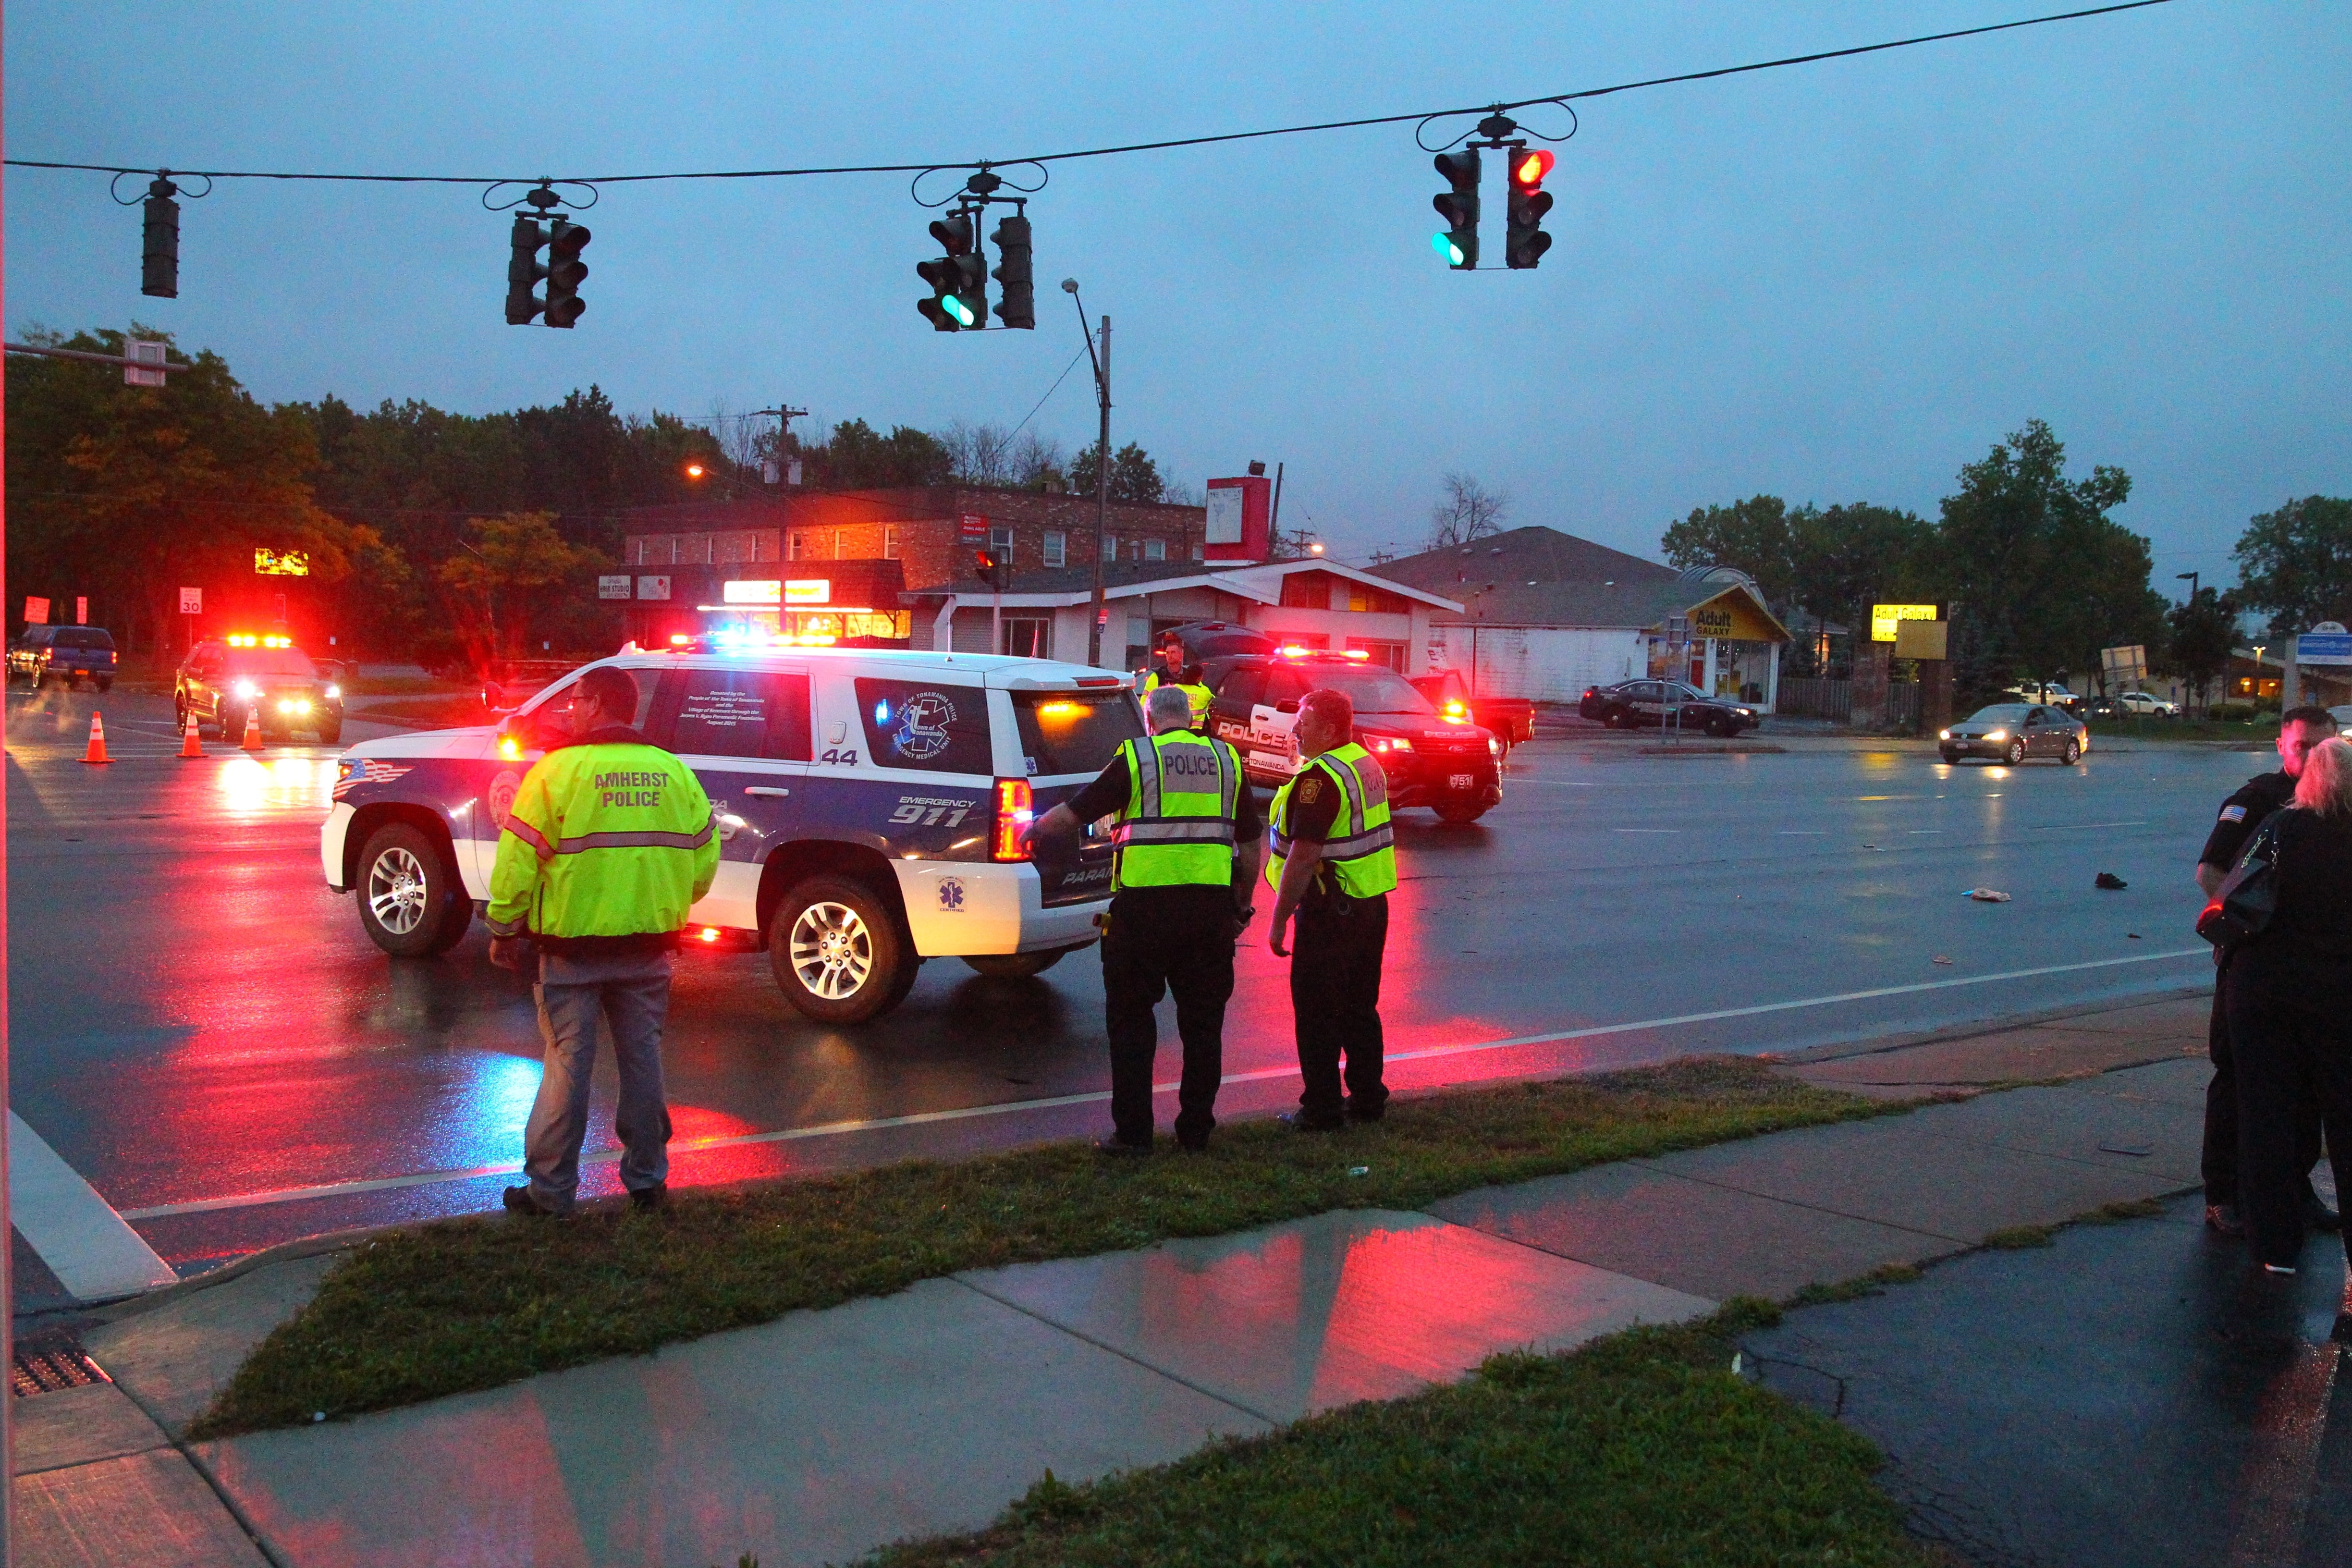 Tonawanda Police on the scene where a pedestrian was taken to ECMC after being hit by a vehicle at the intersection of Southbound lane of Niagara Falls Blvd. and Willow Ridge in Town of Tonawanda, N.Y. on Thursday Sept. 29, 2016.   (John Hickey/Buffalo News)